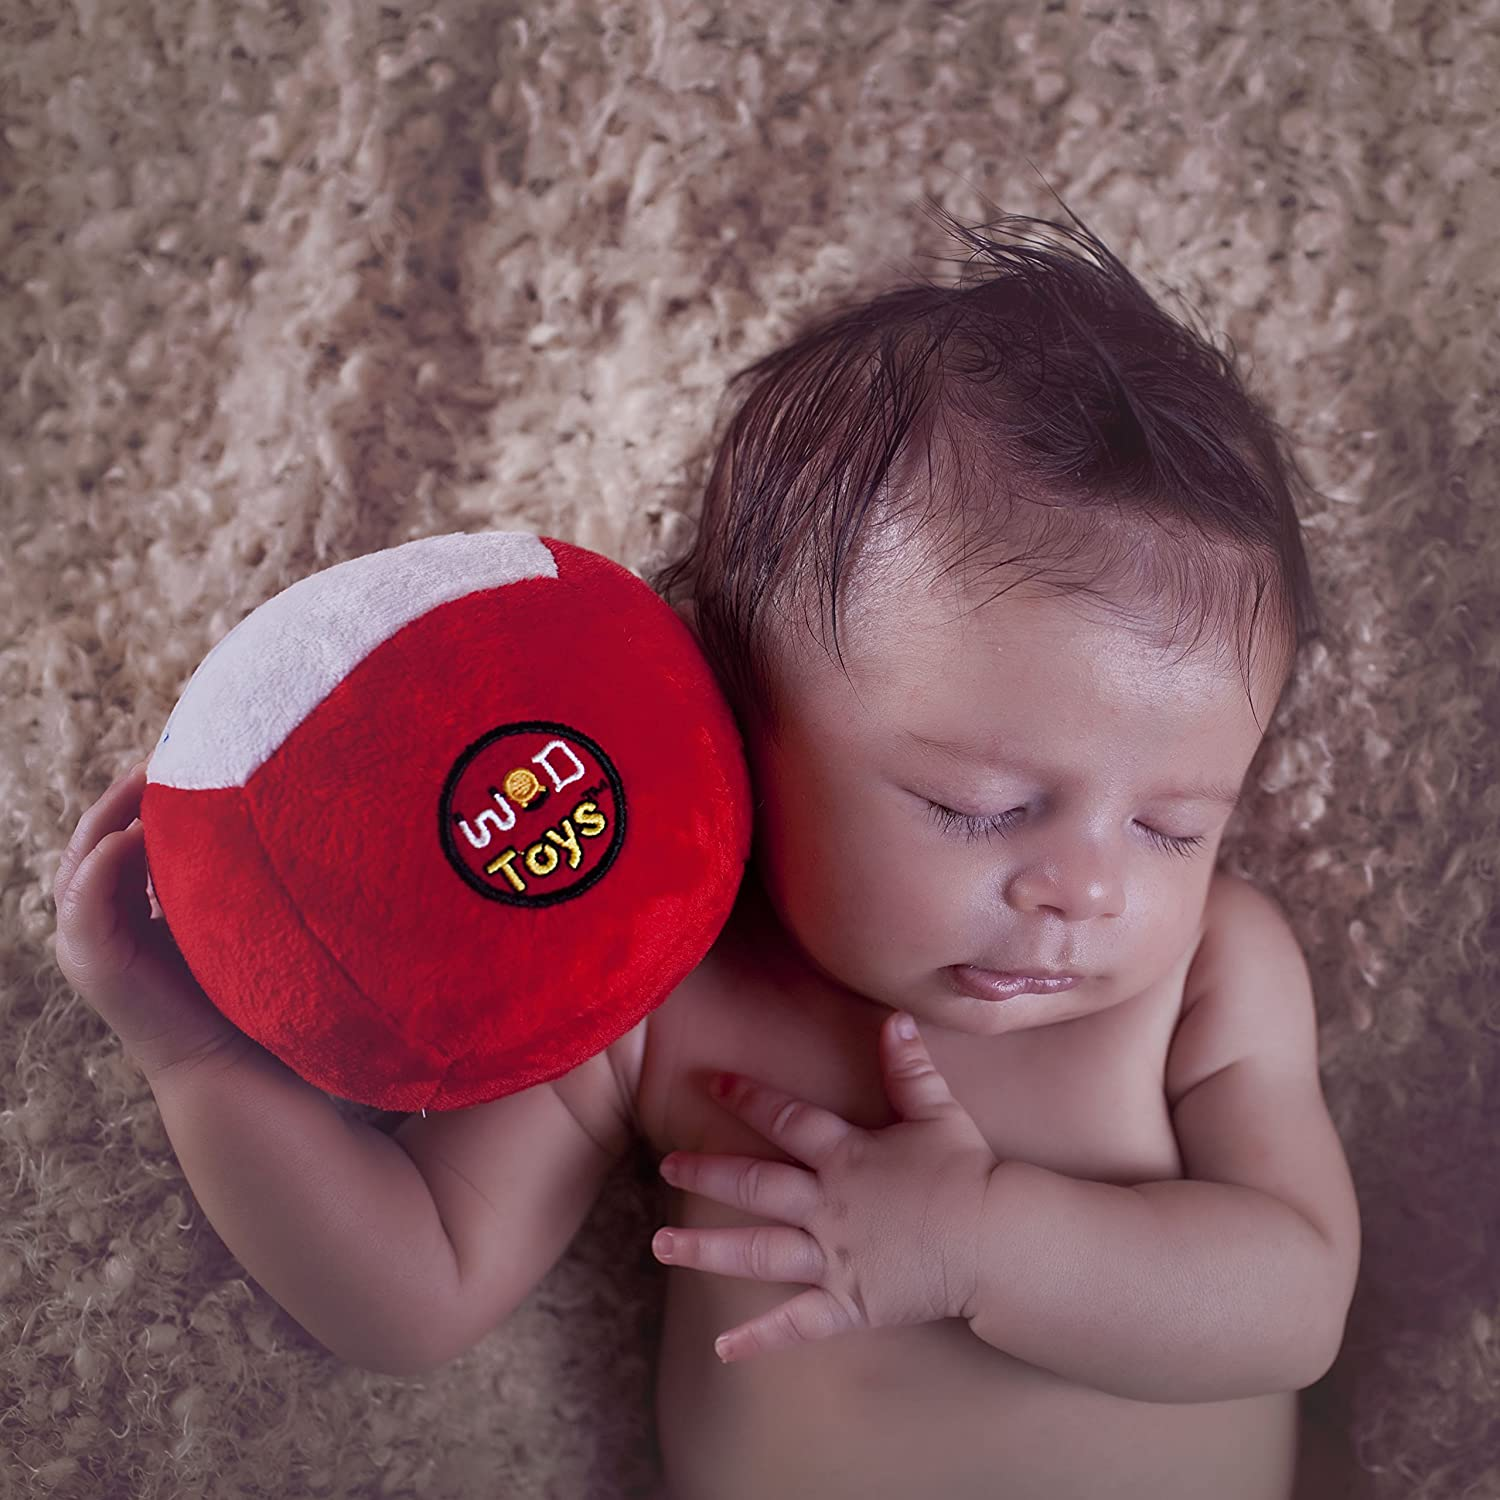 WOD Toys Baby A surprise price is realized Med Ball Plush Medball New products, world's highest quality popular! Rattle - Safe Durable with